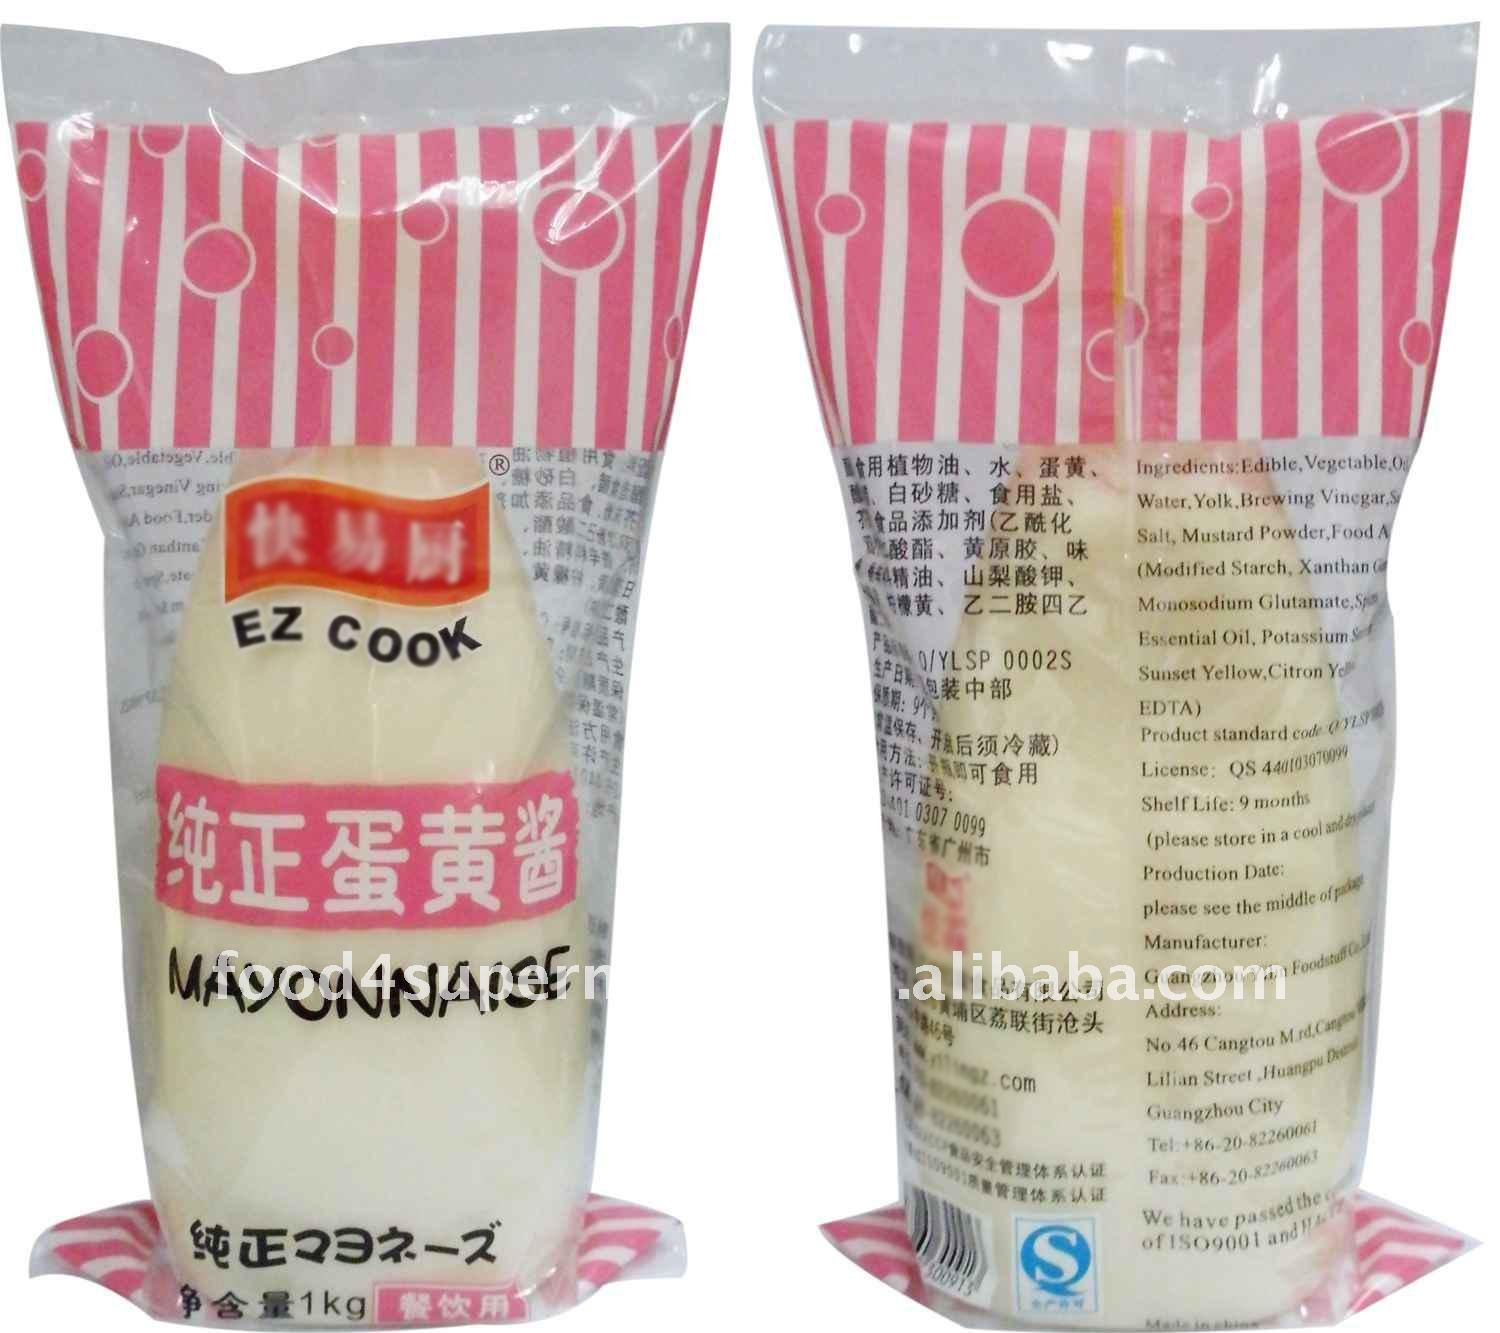 Mayonnaise with egg packed in PET bottles